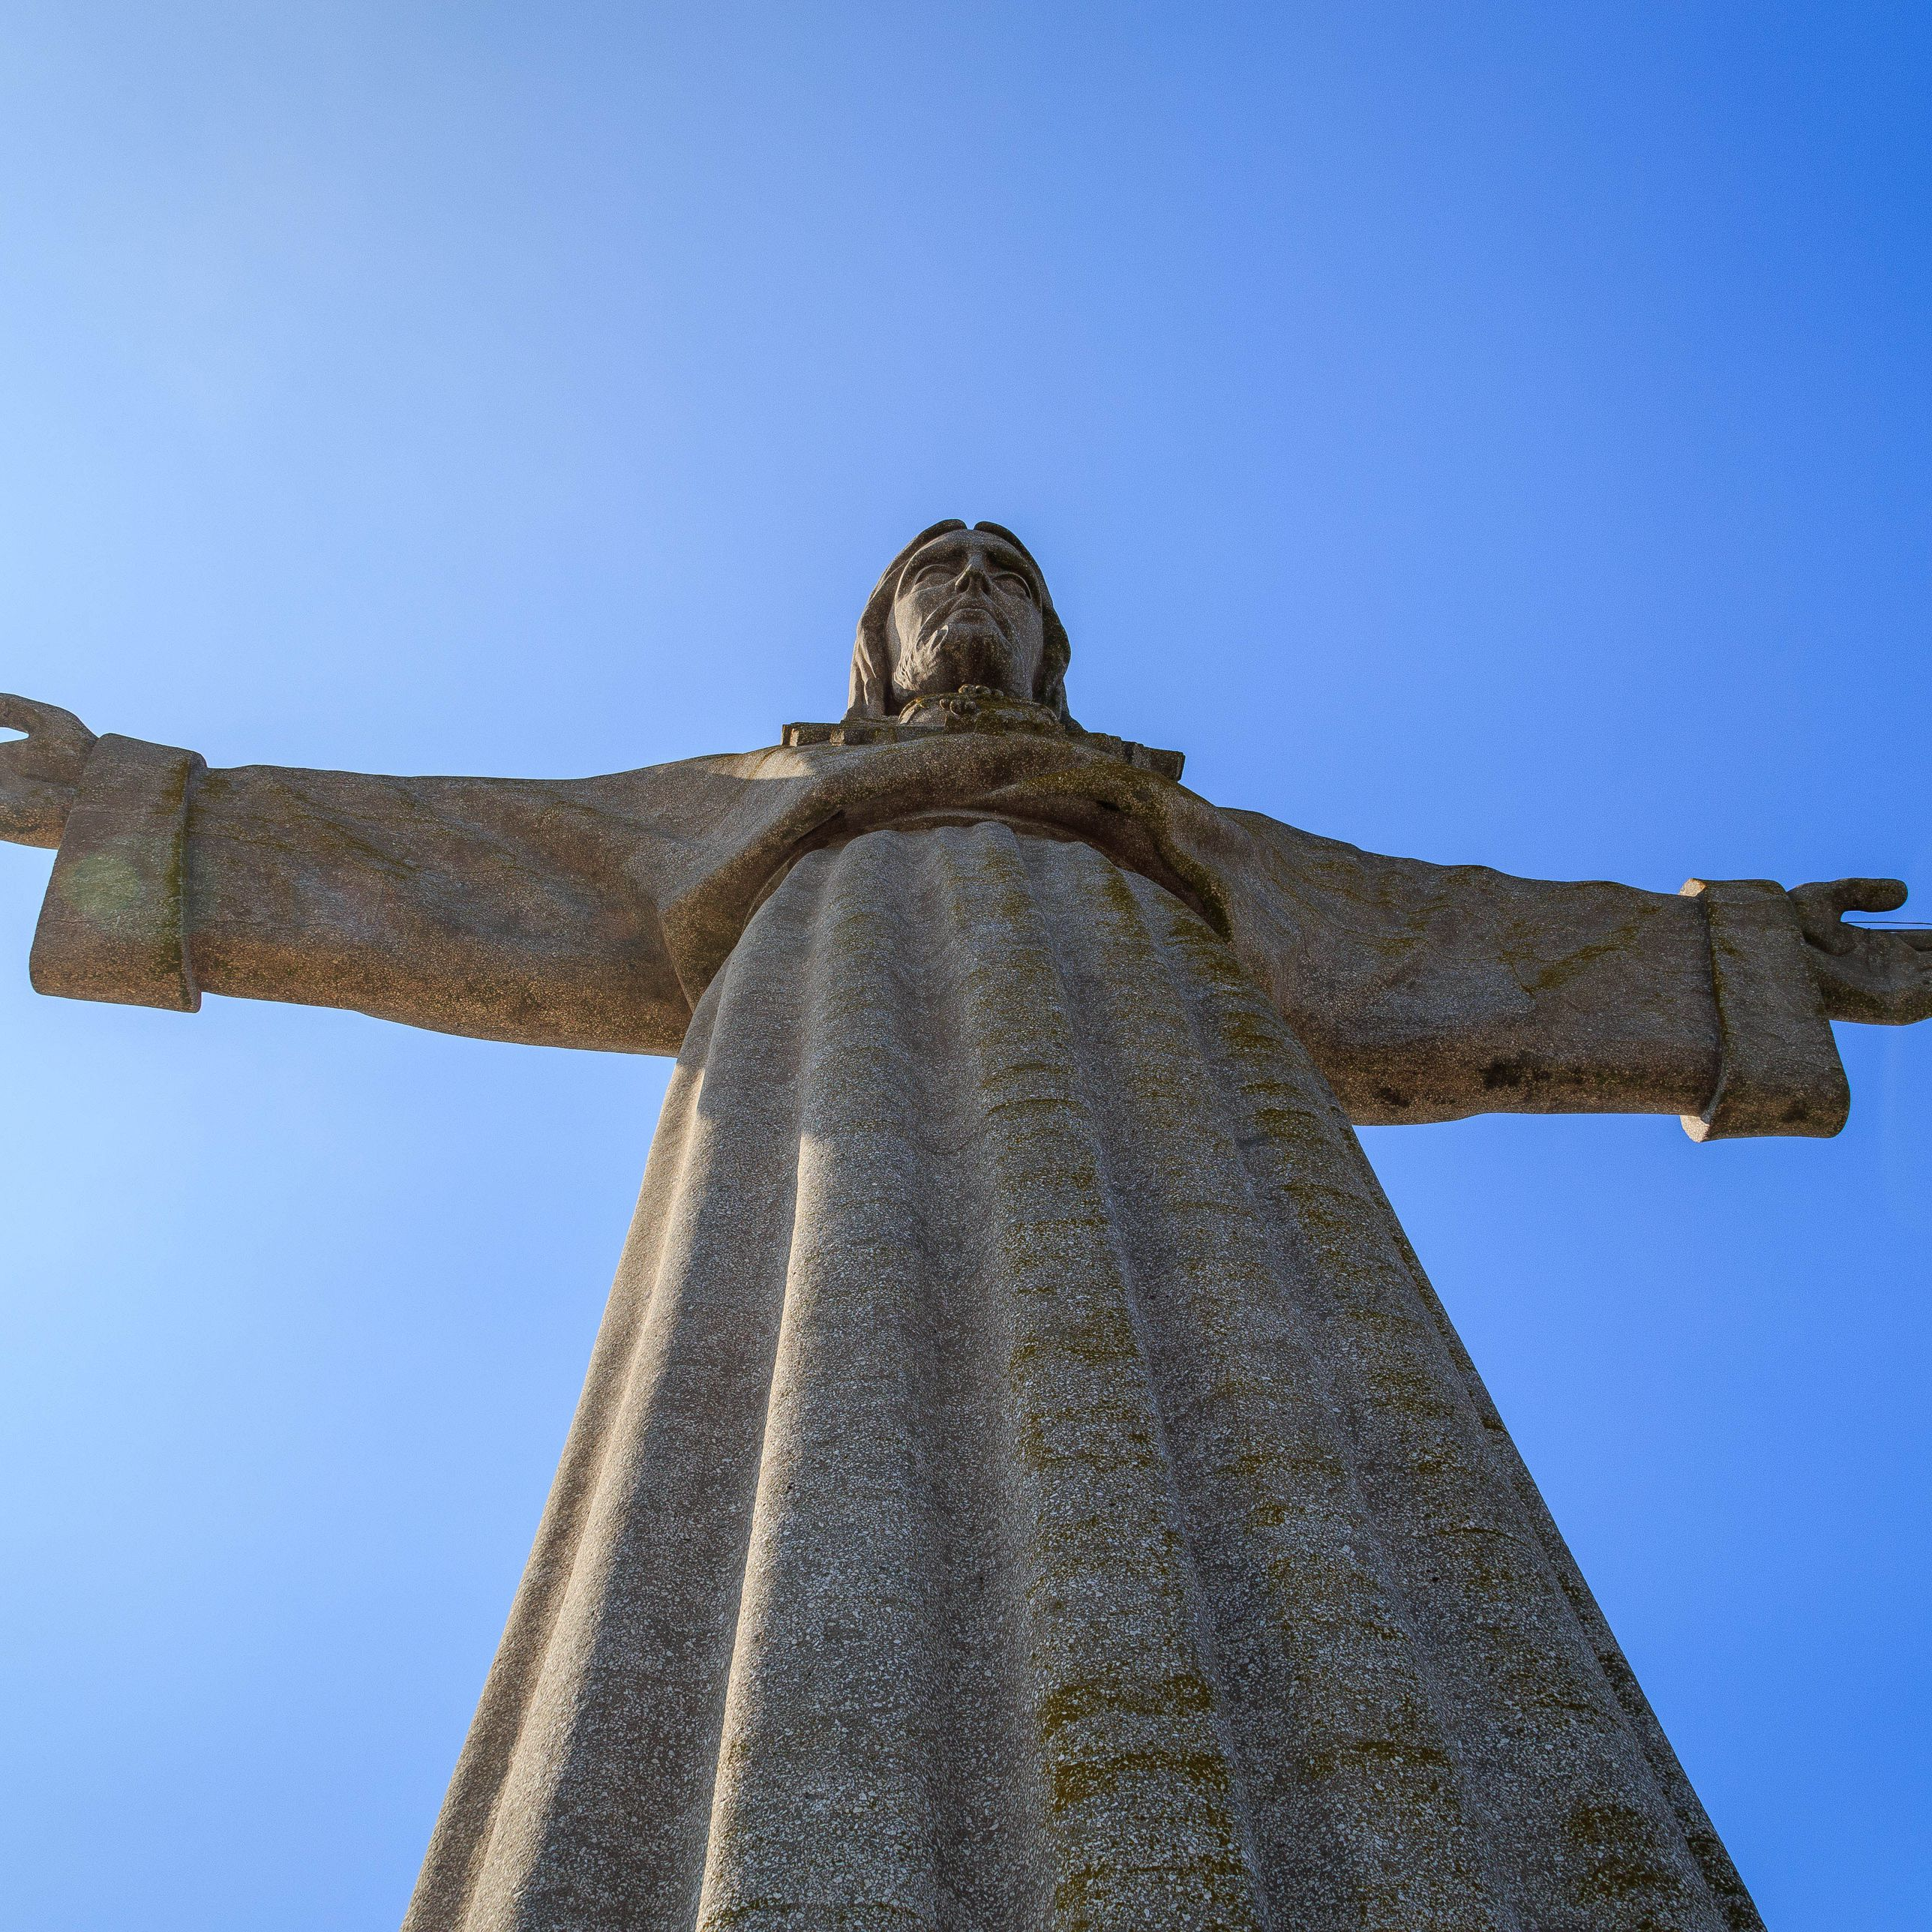 The Construction of Brazil's Christ the Redeemer Statue